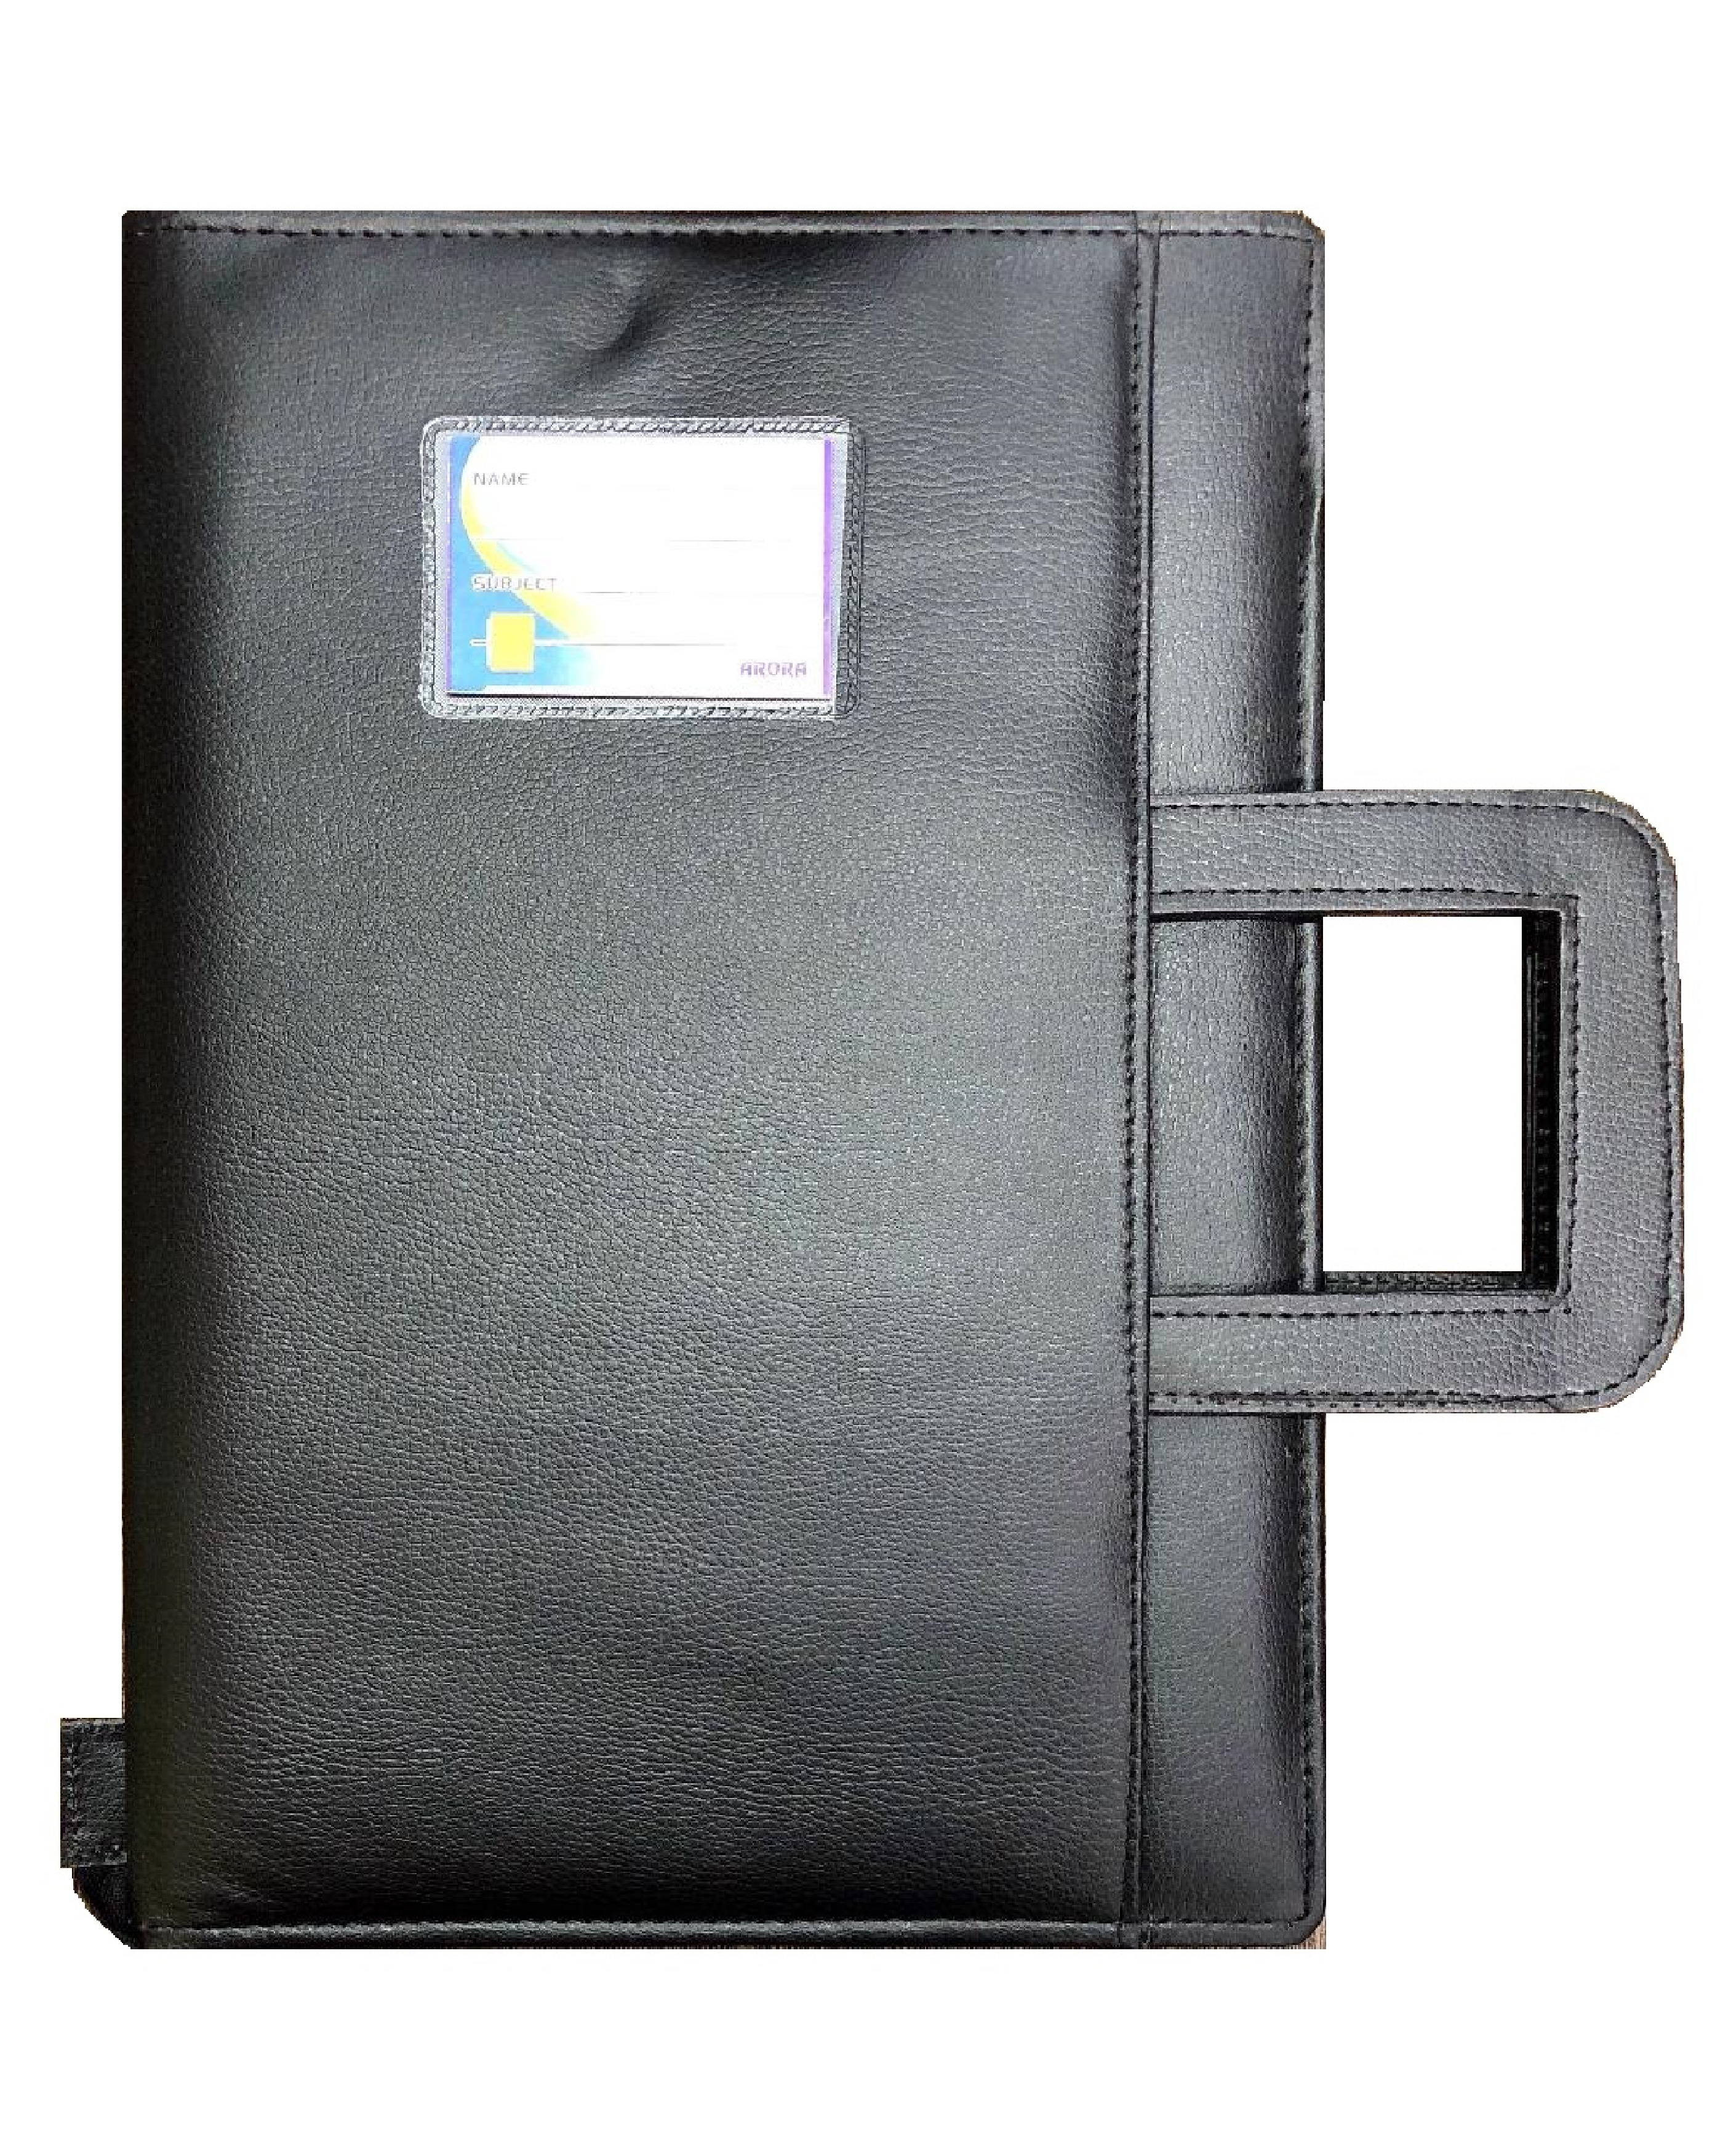 Executive File Folder with Adjustable Handle, B4 Size